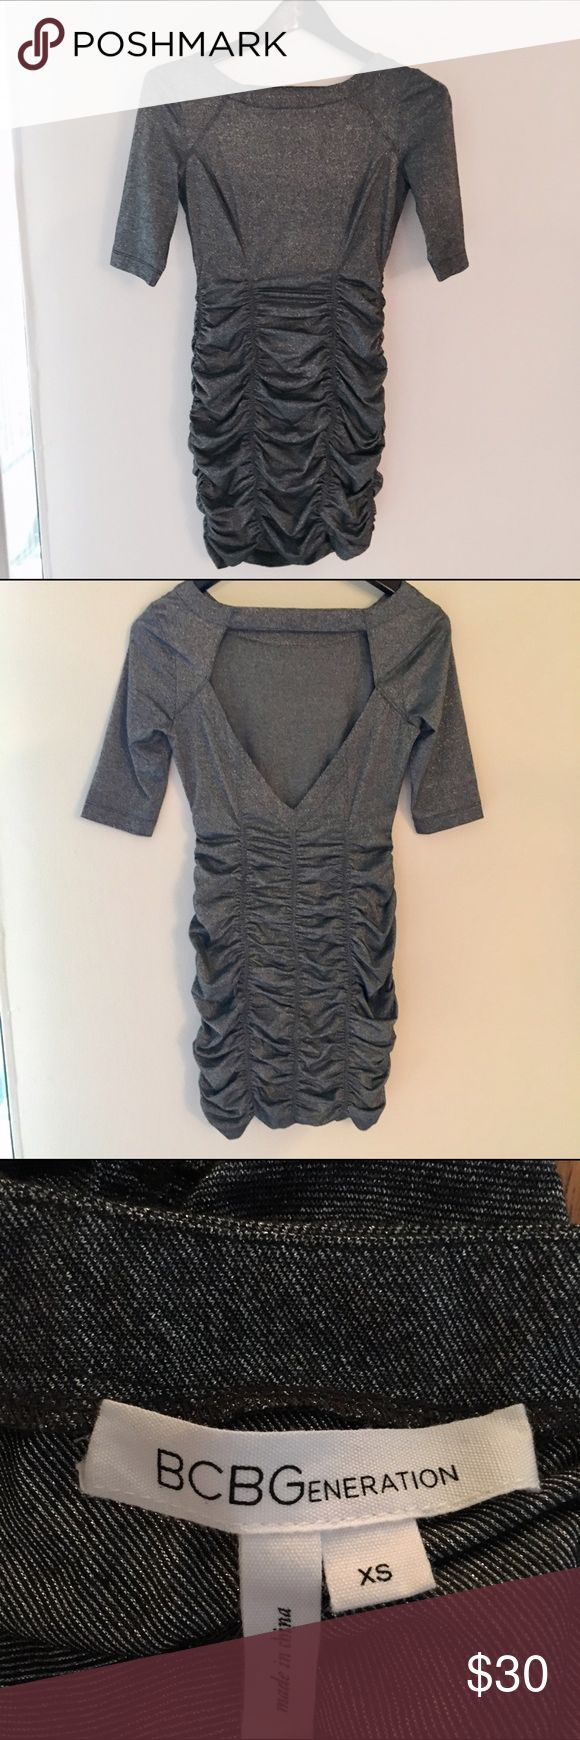 BCBGeneration Silver Open Back Ruche Bodycon Dress This sexy metallic bodycon dress in a dark grey/silver is perfect for New Year's Eve or other holiday parties. The dress is stretchy and the ruching makes it very figure flattering. Only worn twice. Good condition. BCBGeneration Dresses Long Sleeve